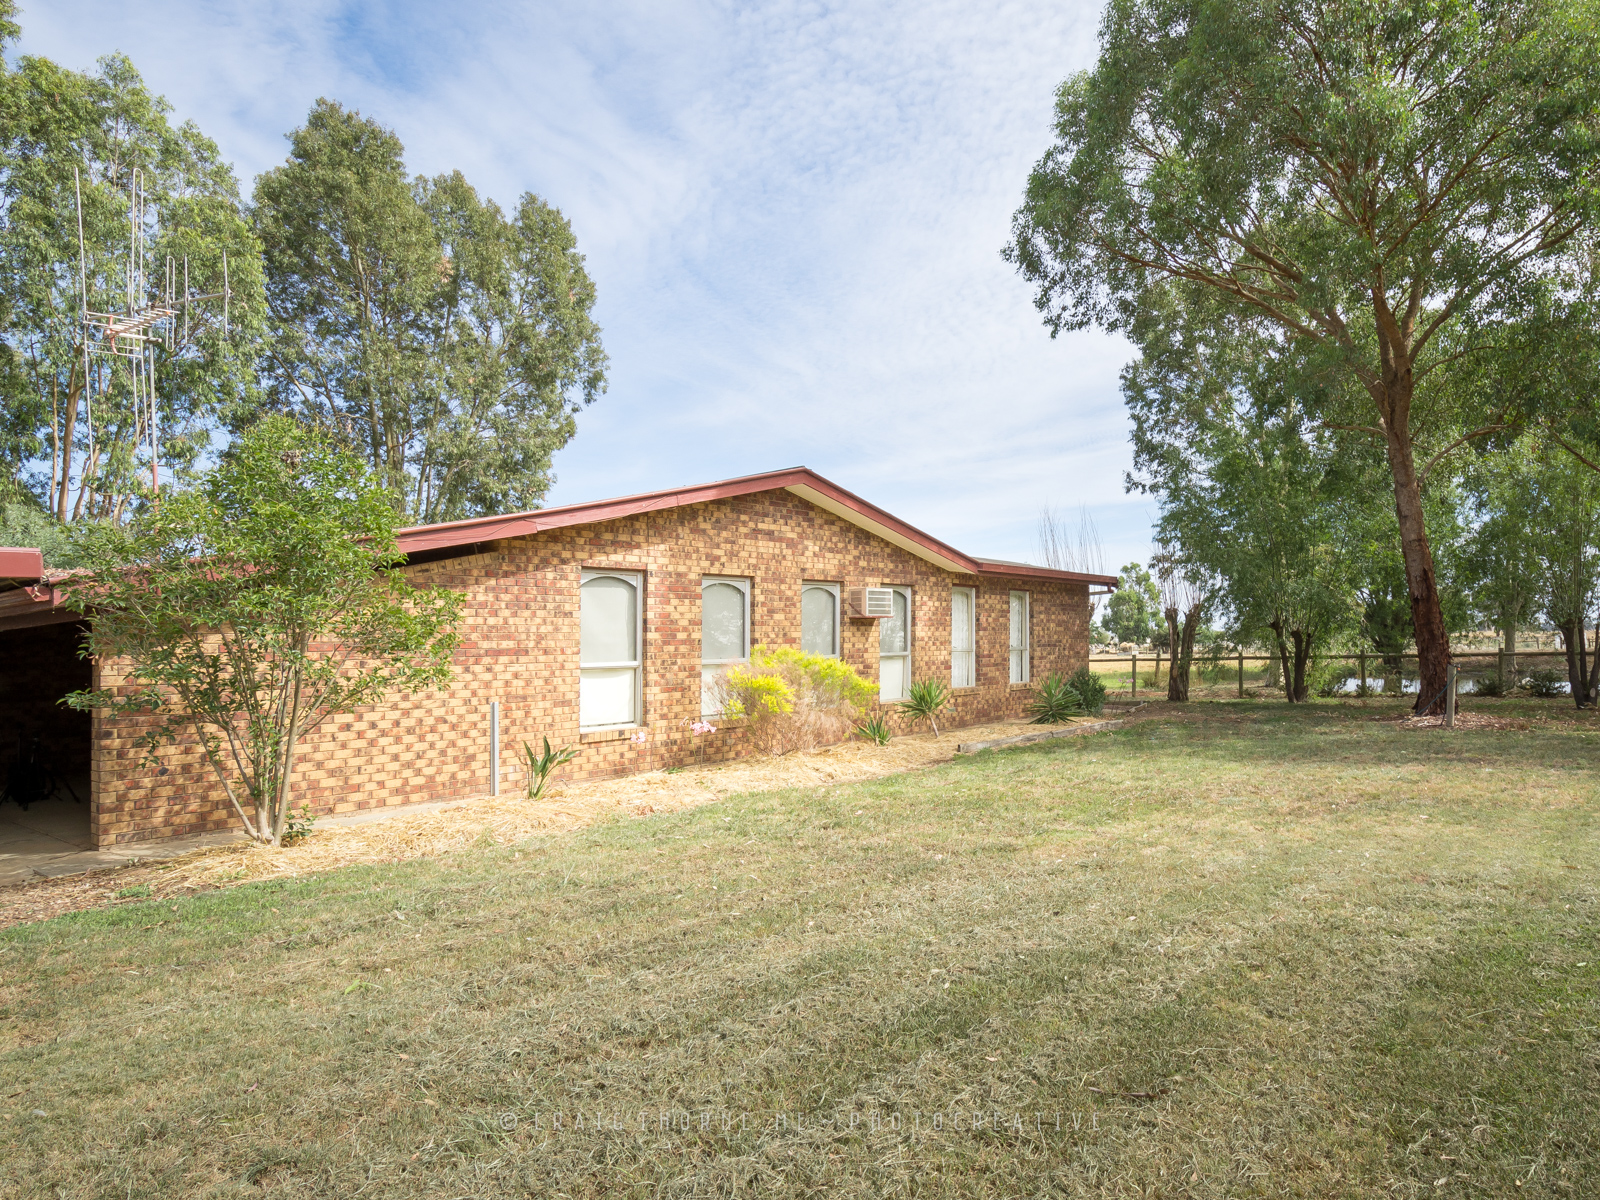 180215-01-CRE-185-Ross-Rd-Coomboona–©CT-THN_2259.jpg